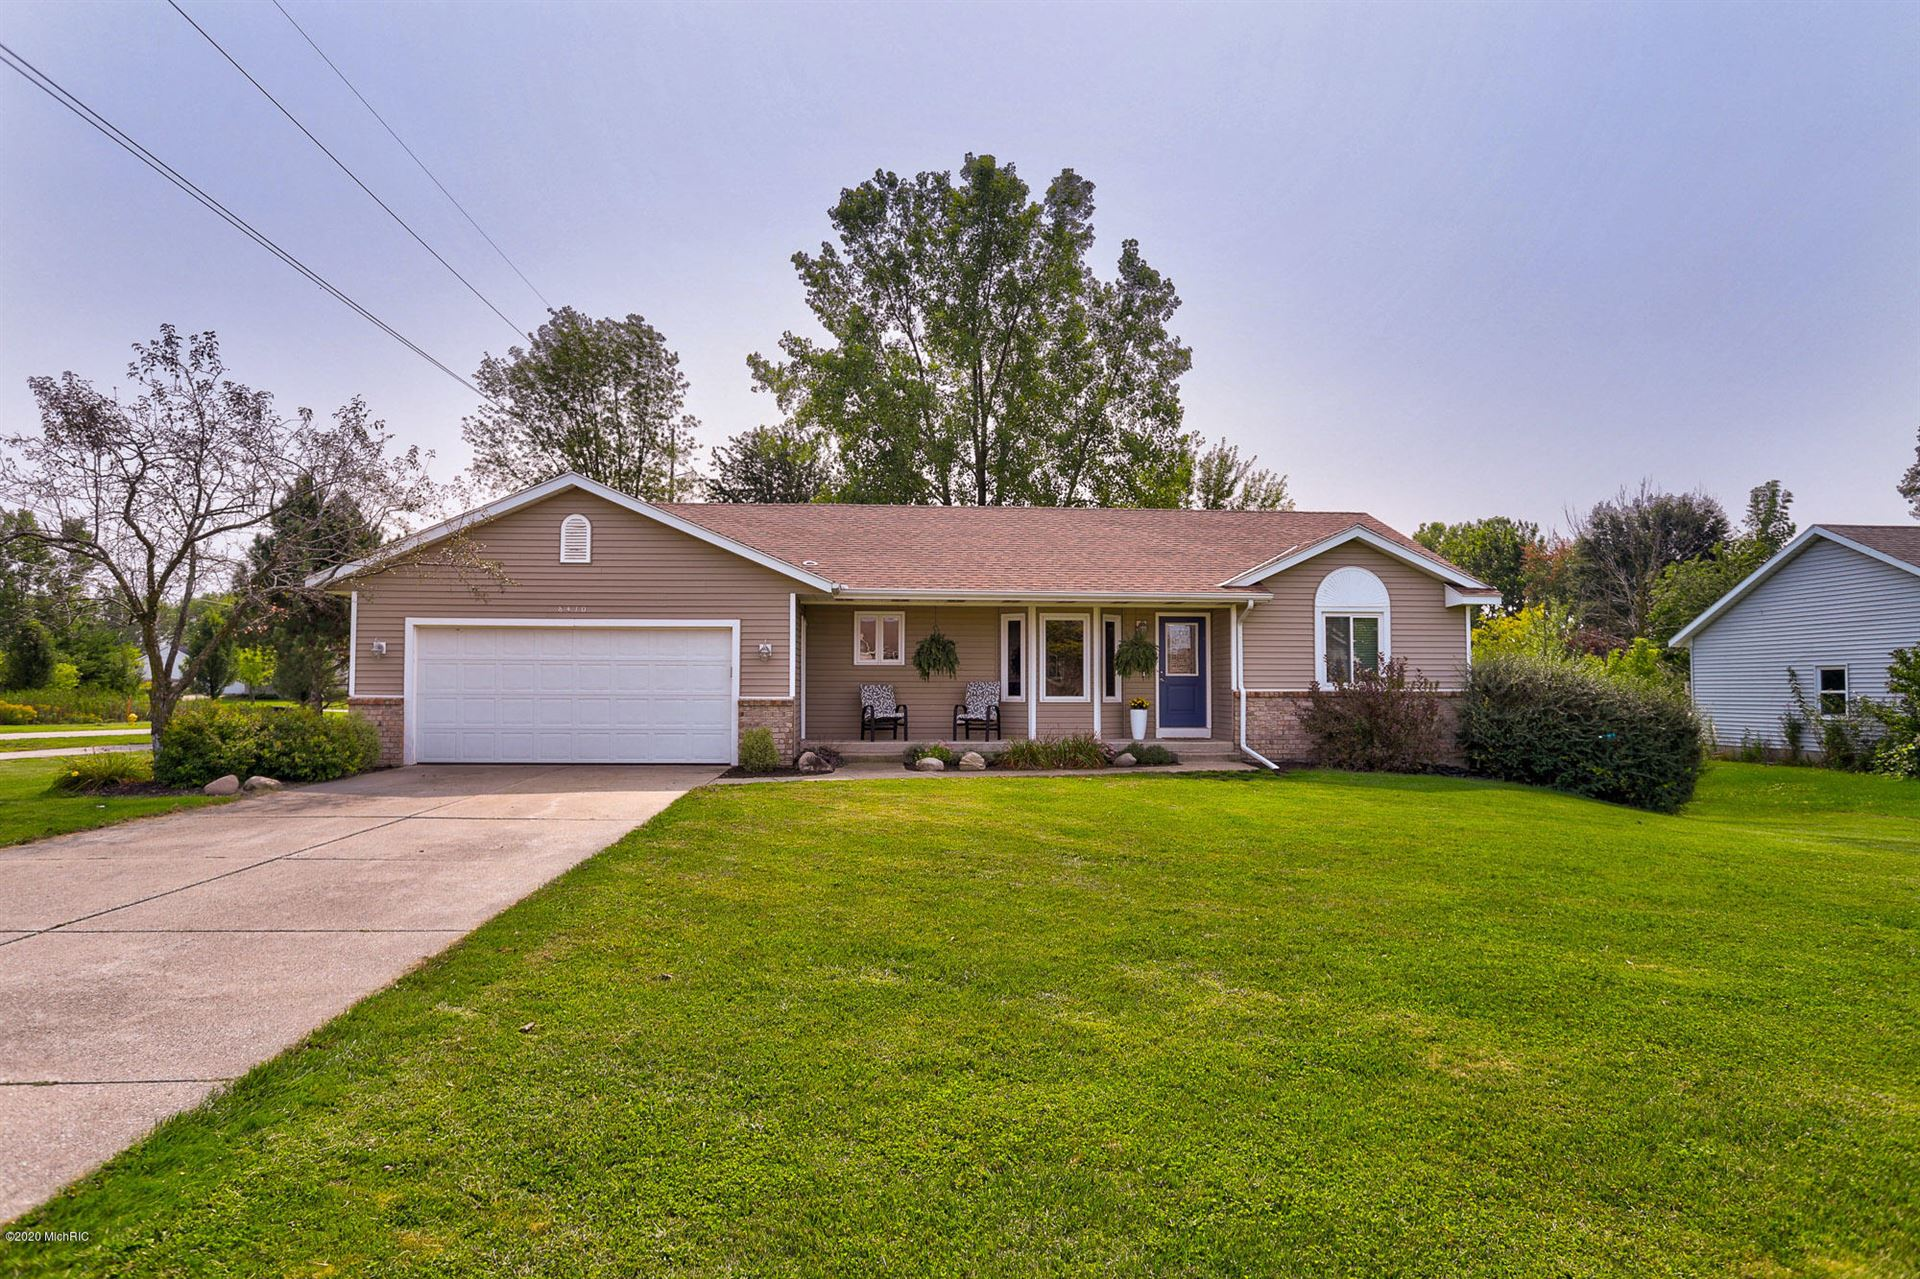 8410 S Maple Court, Zeeland, MI 49464 - MLS#: 20038716